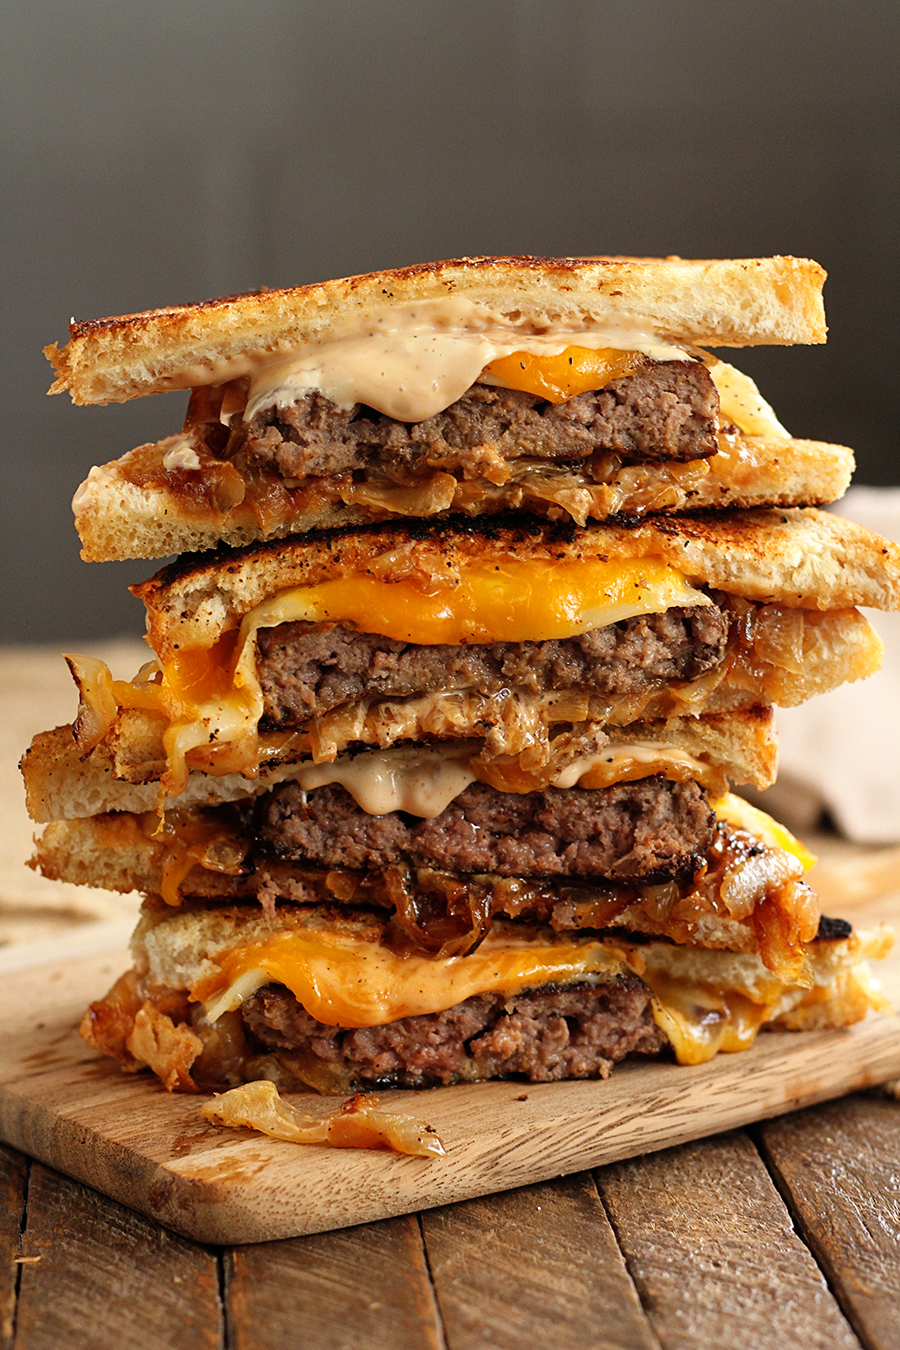 This easy recipe for gooey, cheesy Patty Melts is made even easier by using Chop House Steak Burgers! They're the perfect solution for busy weeknight meal dilemmas! #sponsored